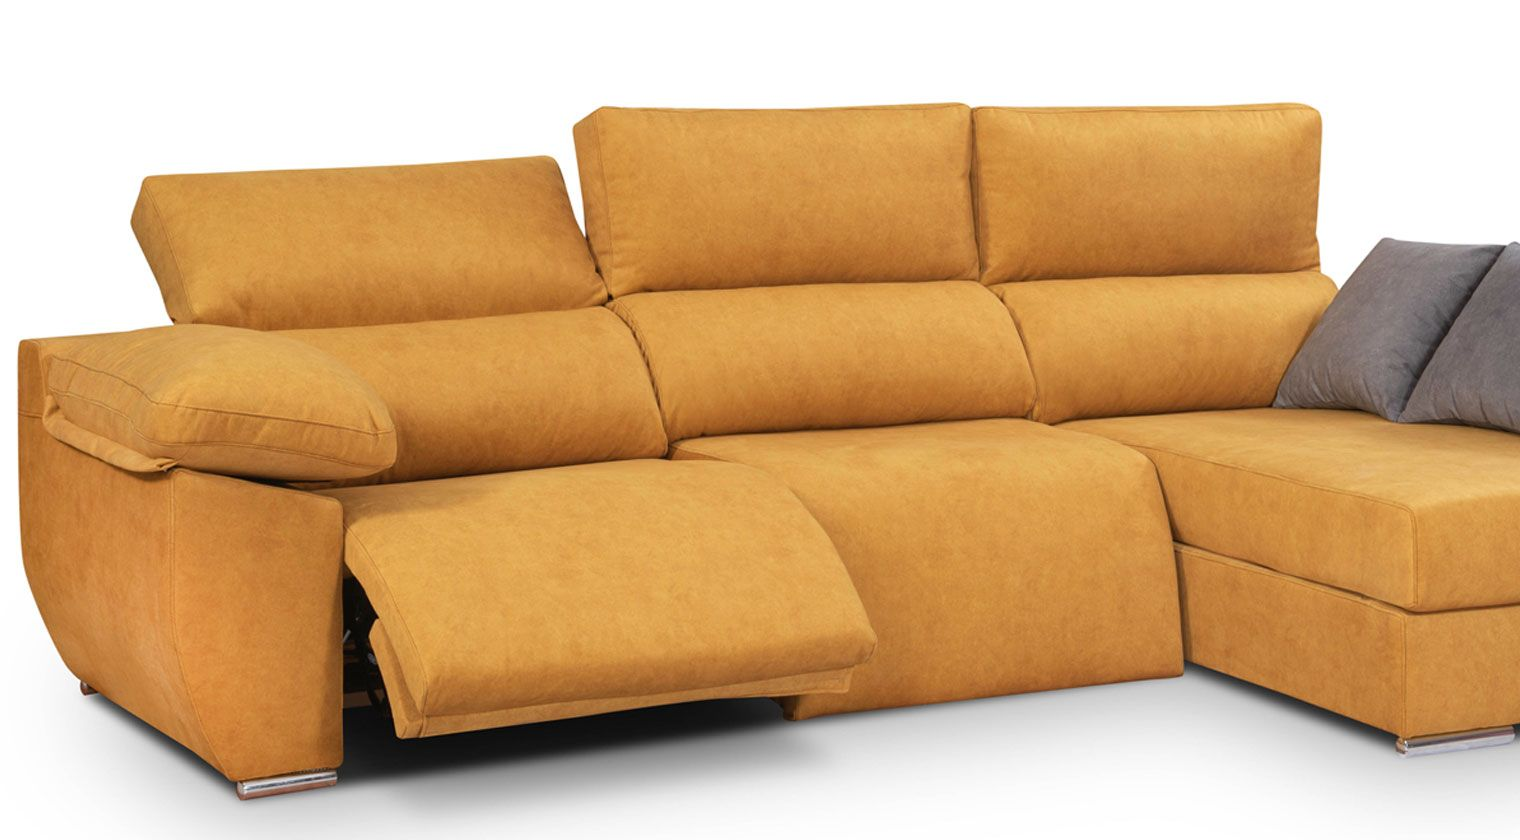 Comprar chaise longue tela faure chaiselongue derecha for Chaise longue interiores